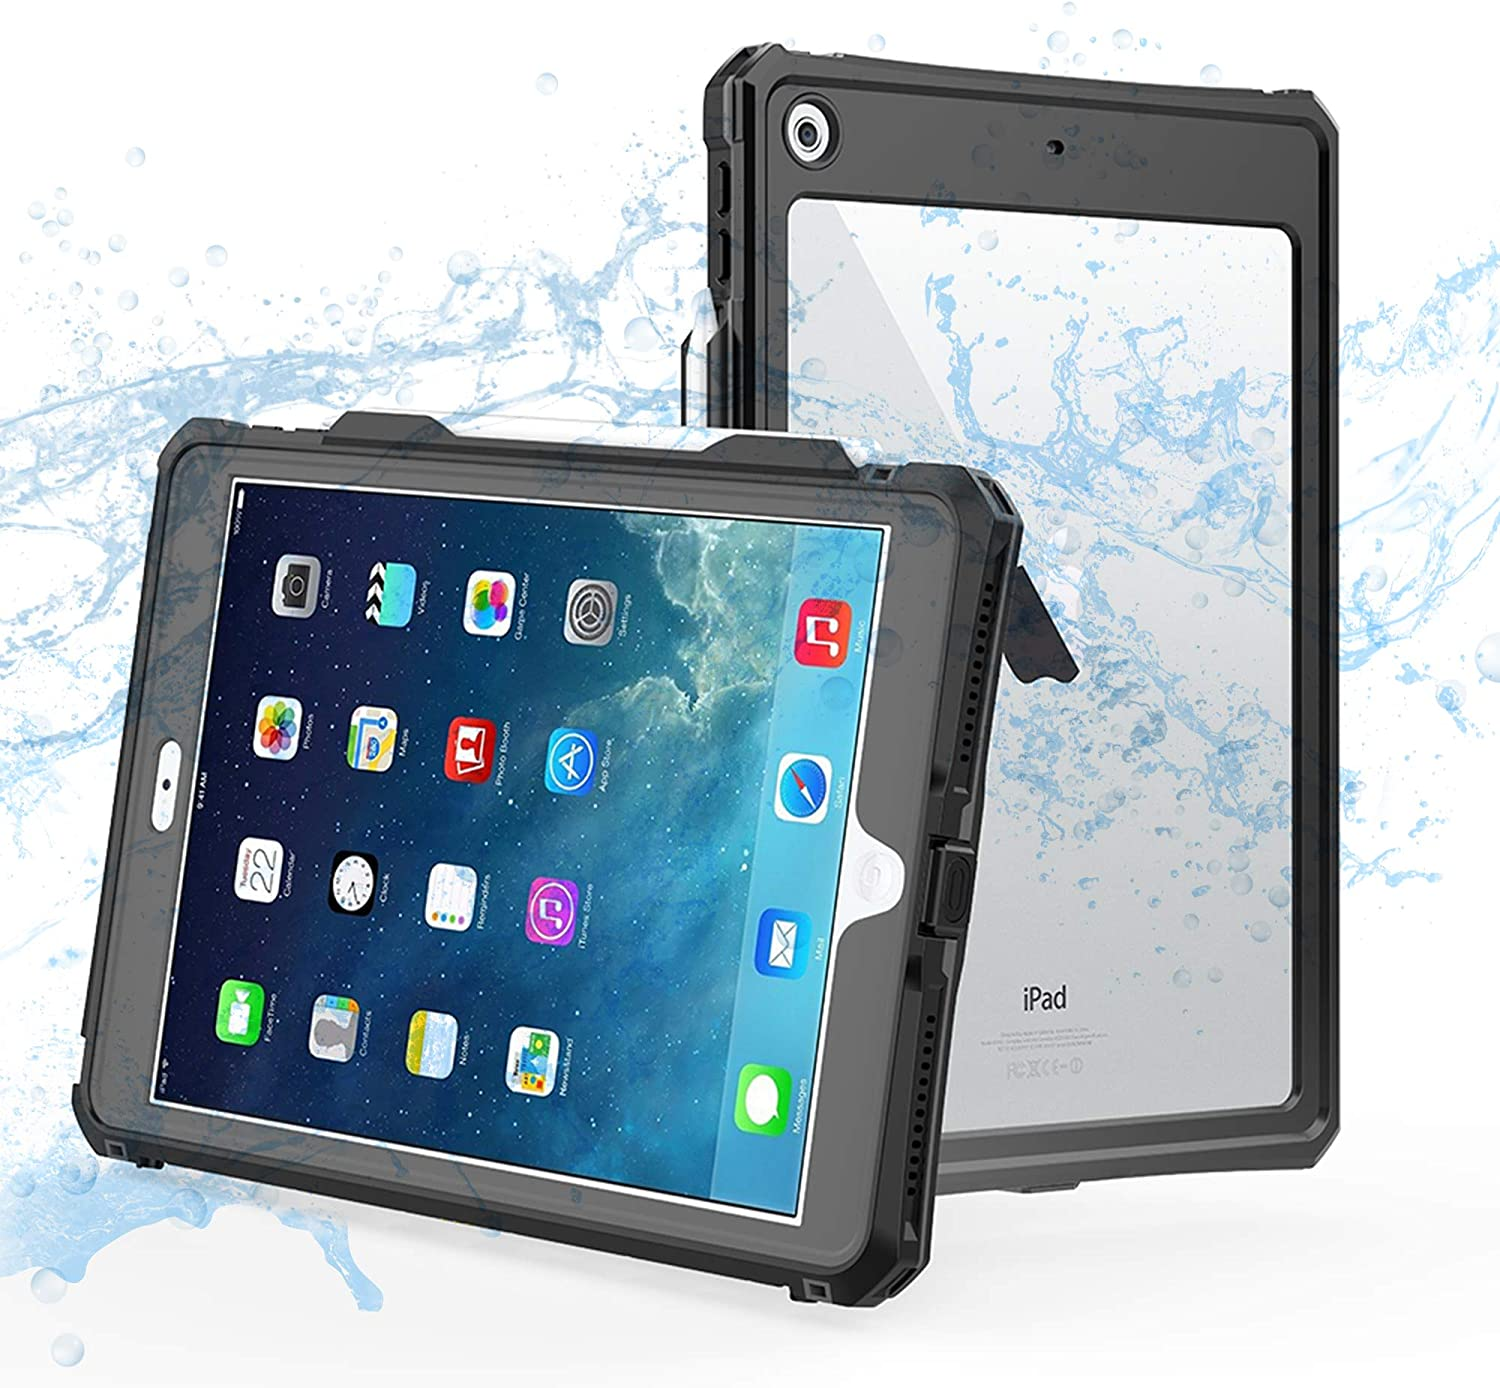 ShellBox Case iPad 8th / 7th Generation Waterproof Case, Full-Body Heavy Duty Shockproof Protective Cover Built-in Screen Protector Pencil Holder Shoulder Strap for iPad 10.2 2020/2019 (Black)